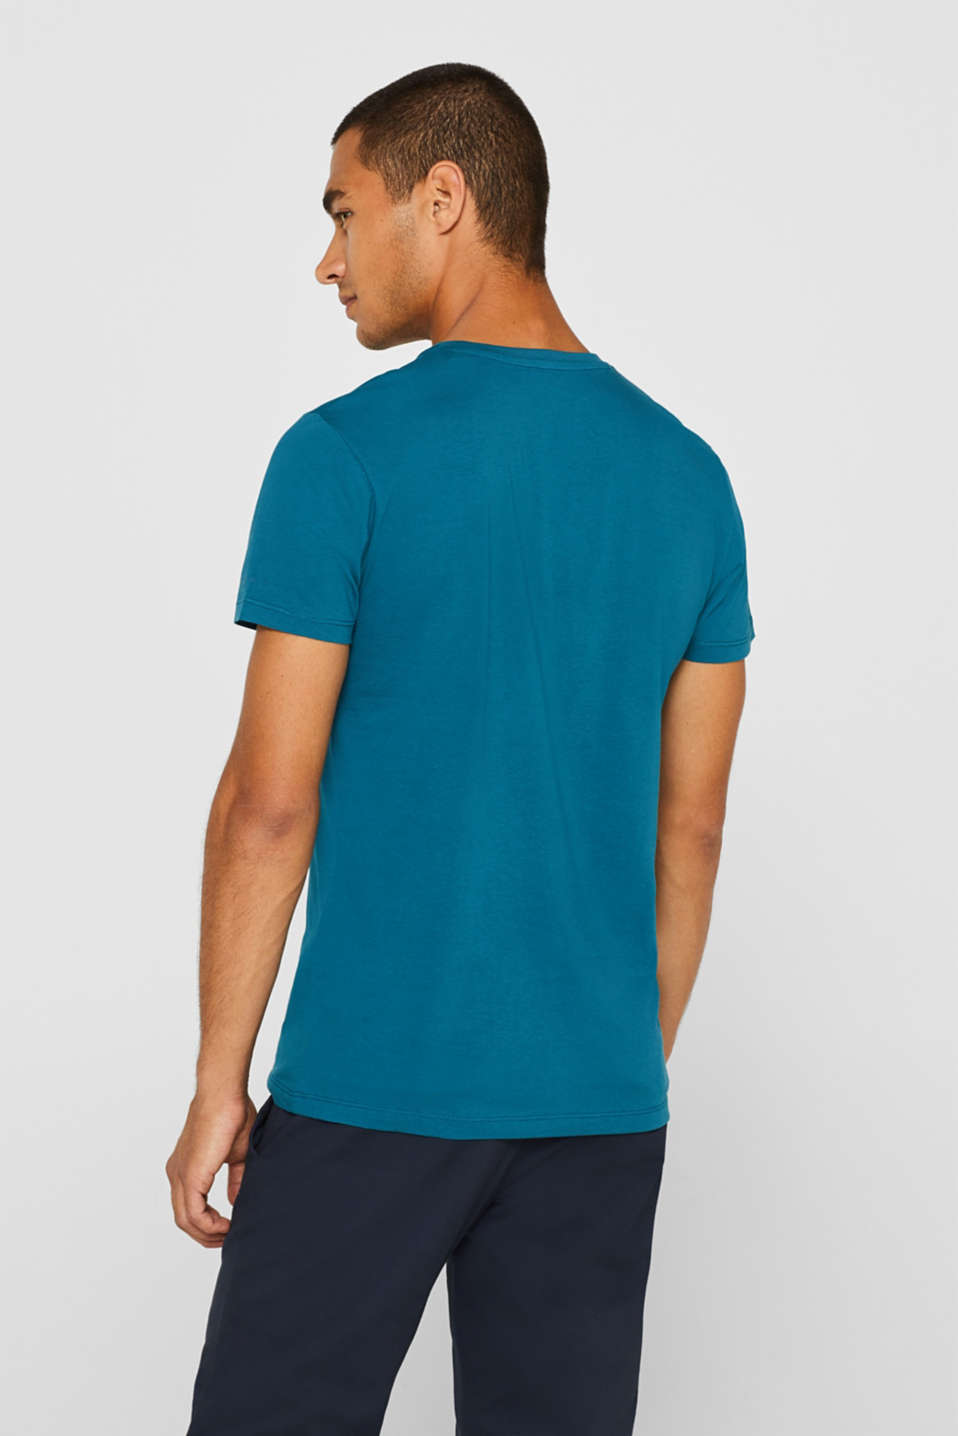 Jersey T-shirt in 100% cotton, PETROL BLUE 2, detail image number 3